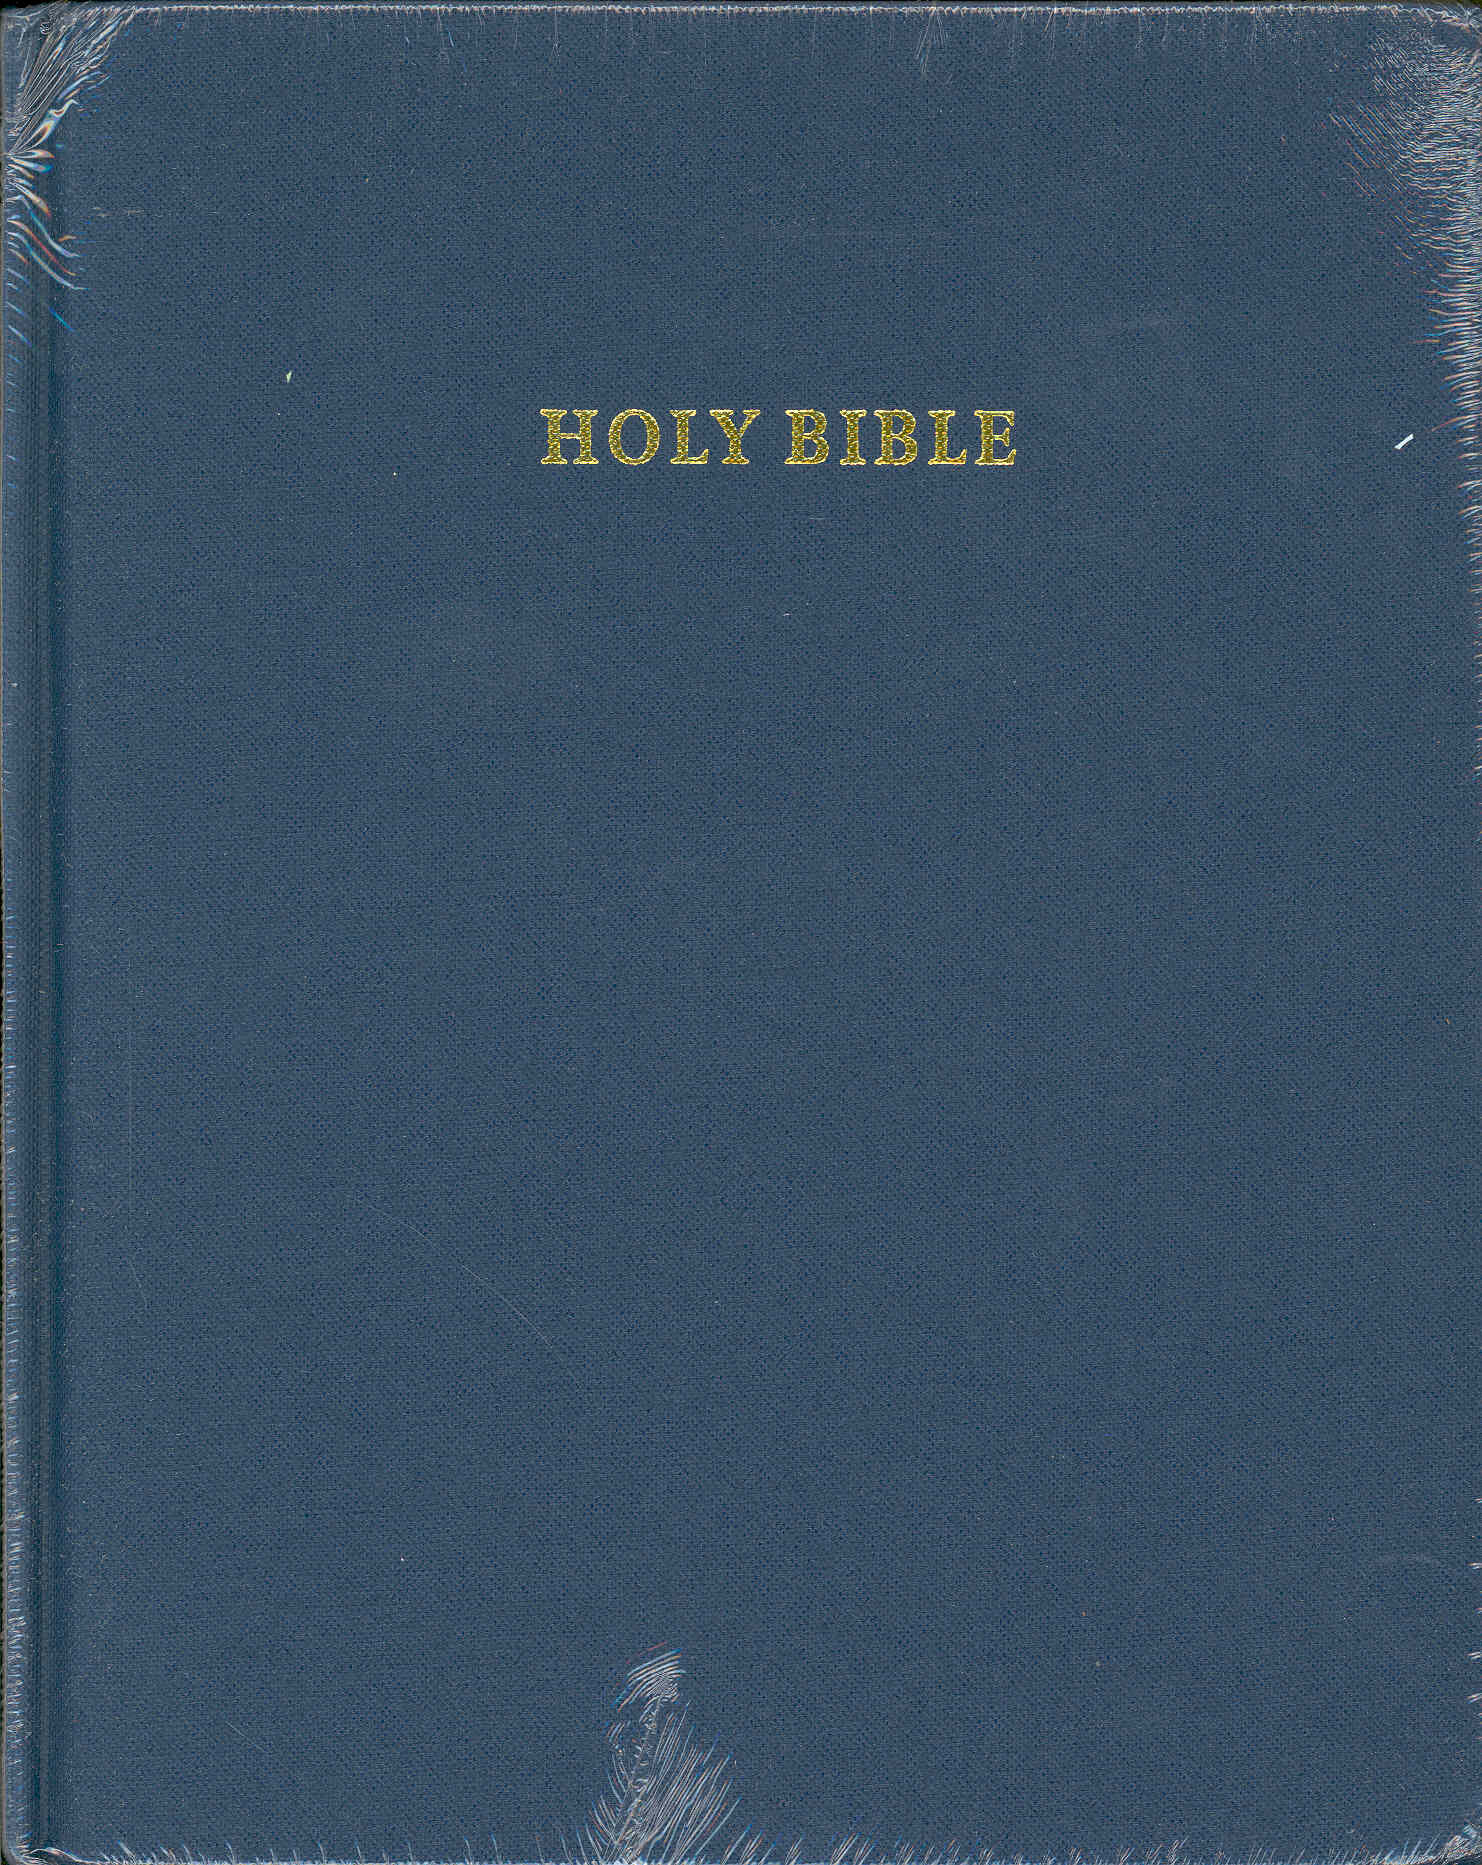 Cambridge Wide Margin KJV Bible